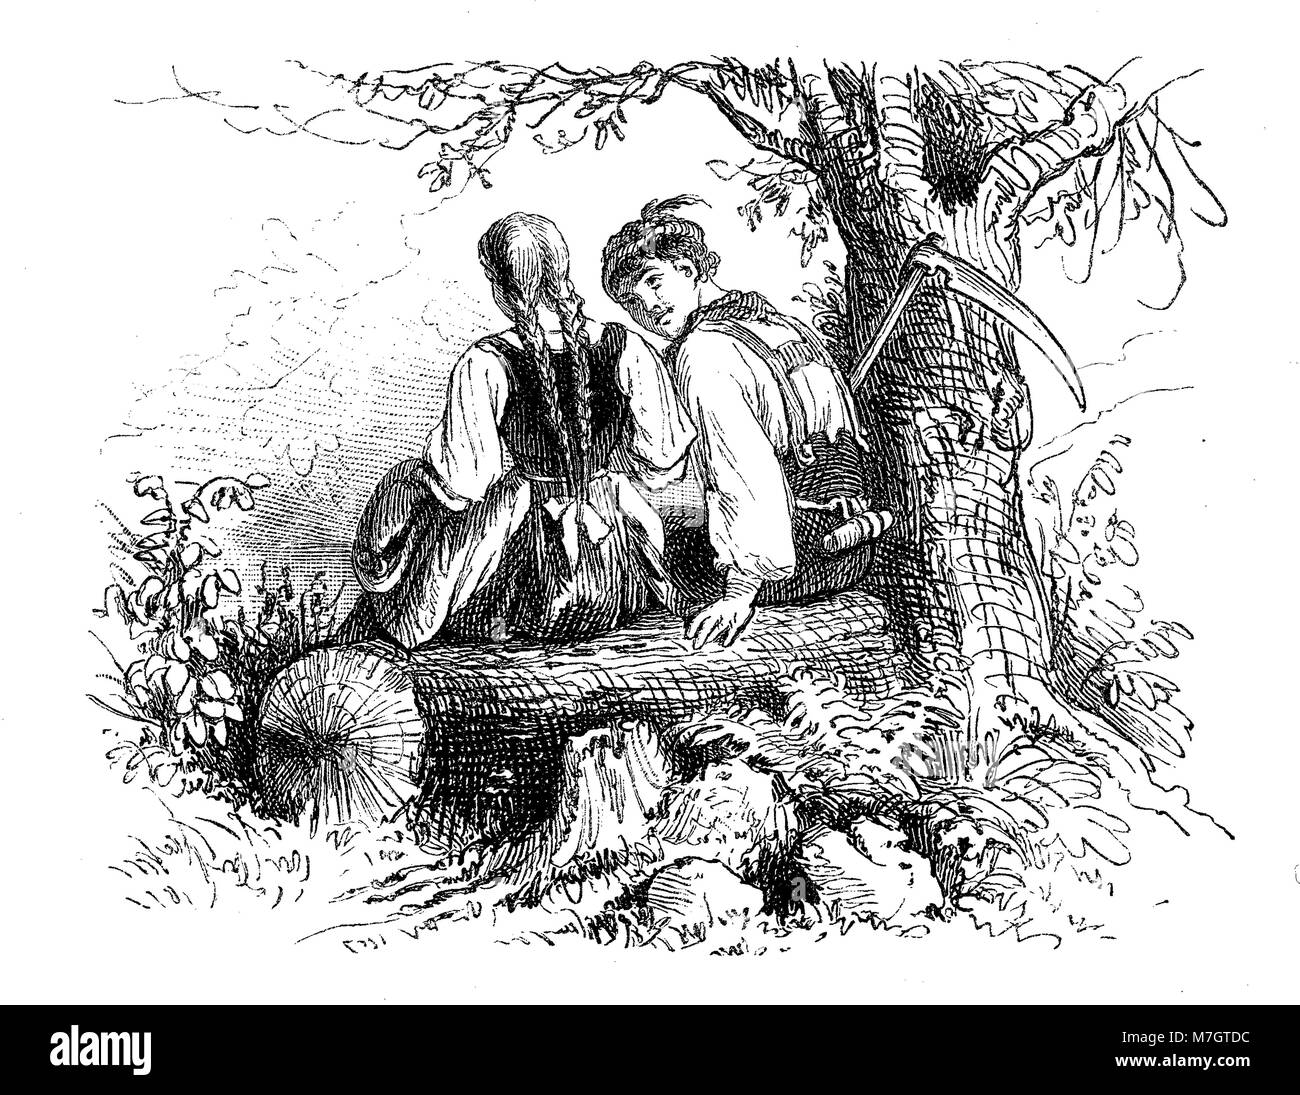 Countryside romance, peasant boy courting a girl, vintage Valentine engraving - Stock Image